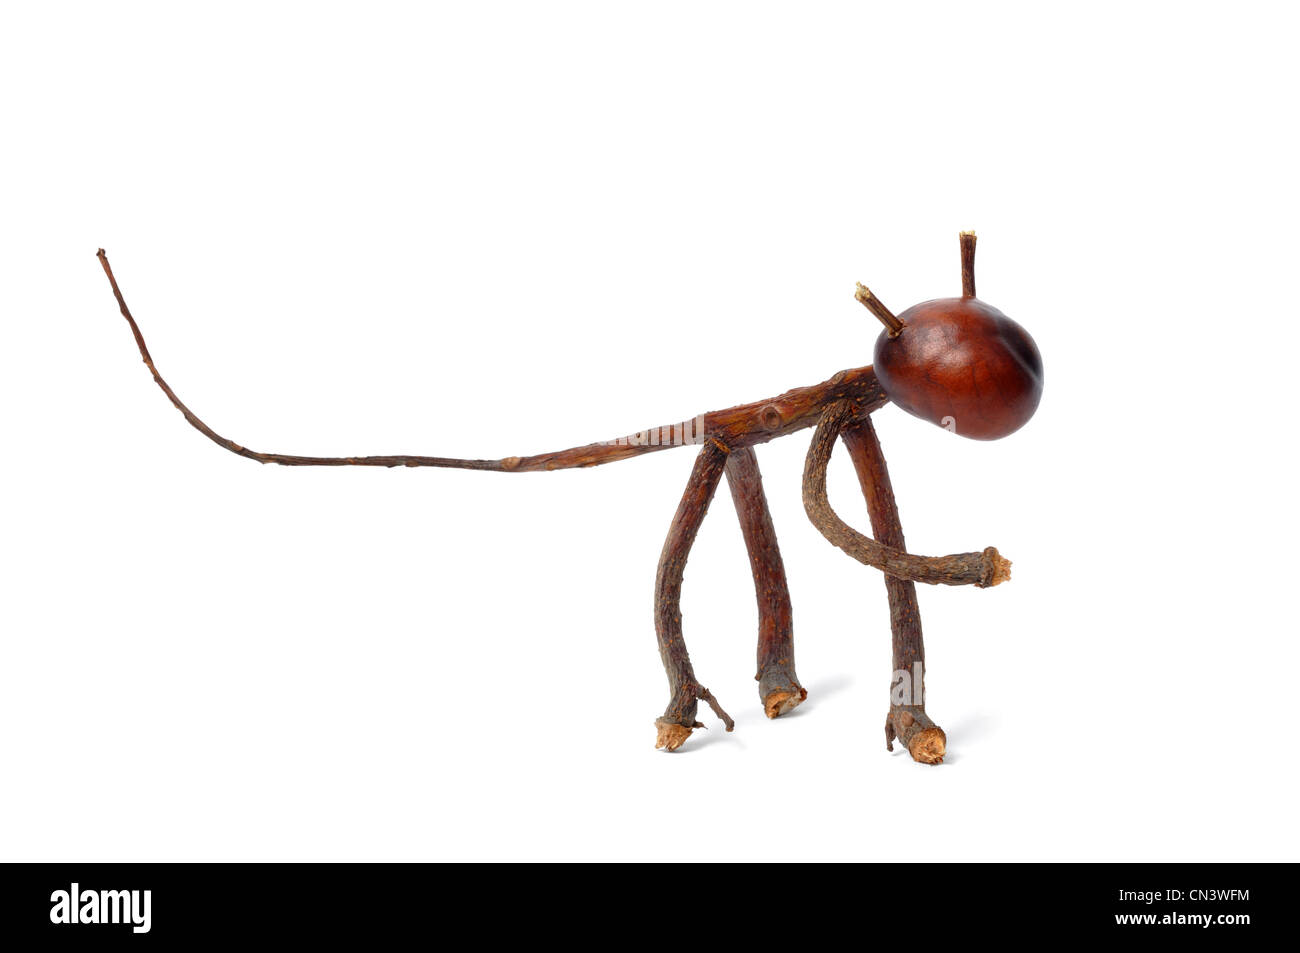 Toy made from chestnuts and matches on white background - Stock Image